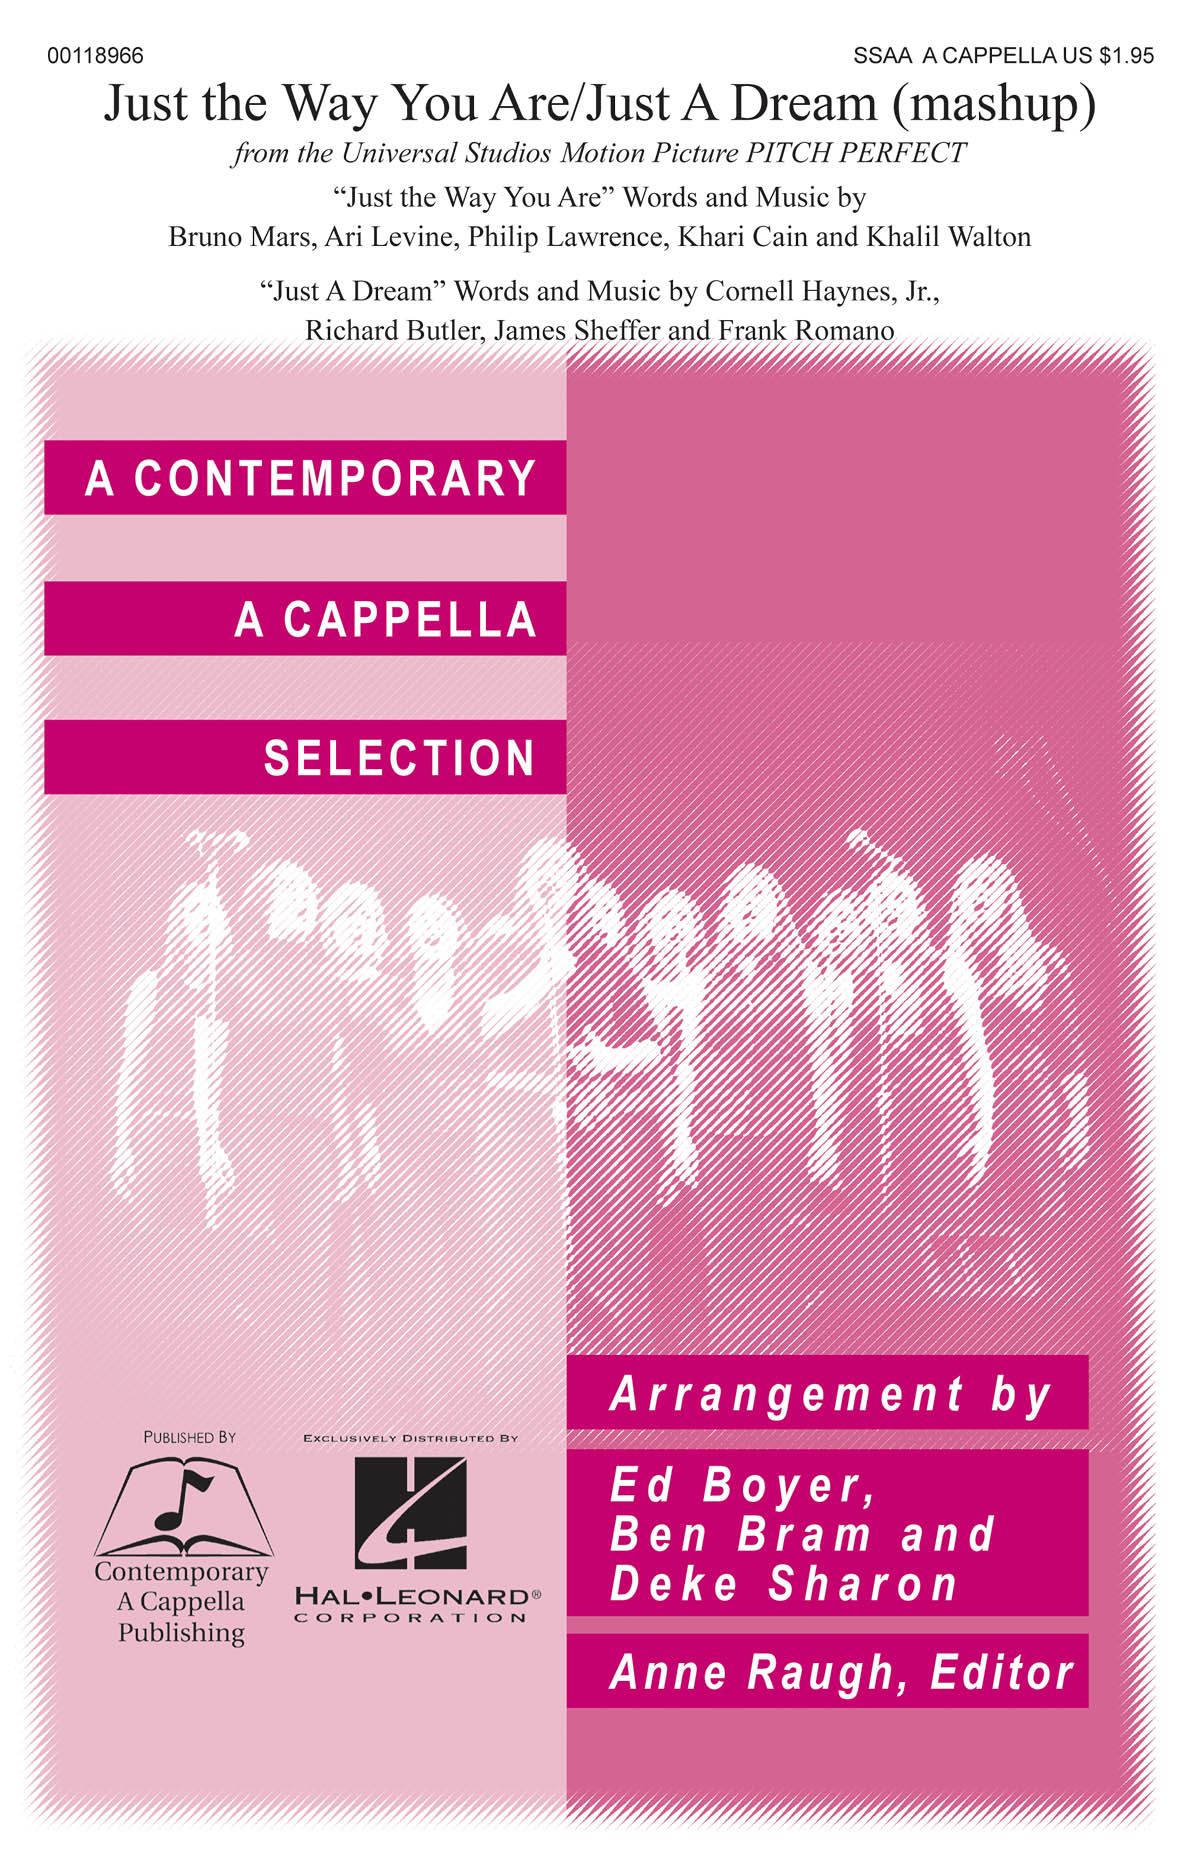 Just the Way You Are/Just a Dream: Upper Voices a Cappella: Vocal Score